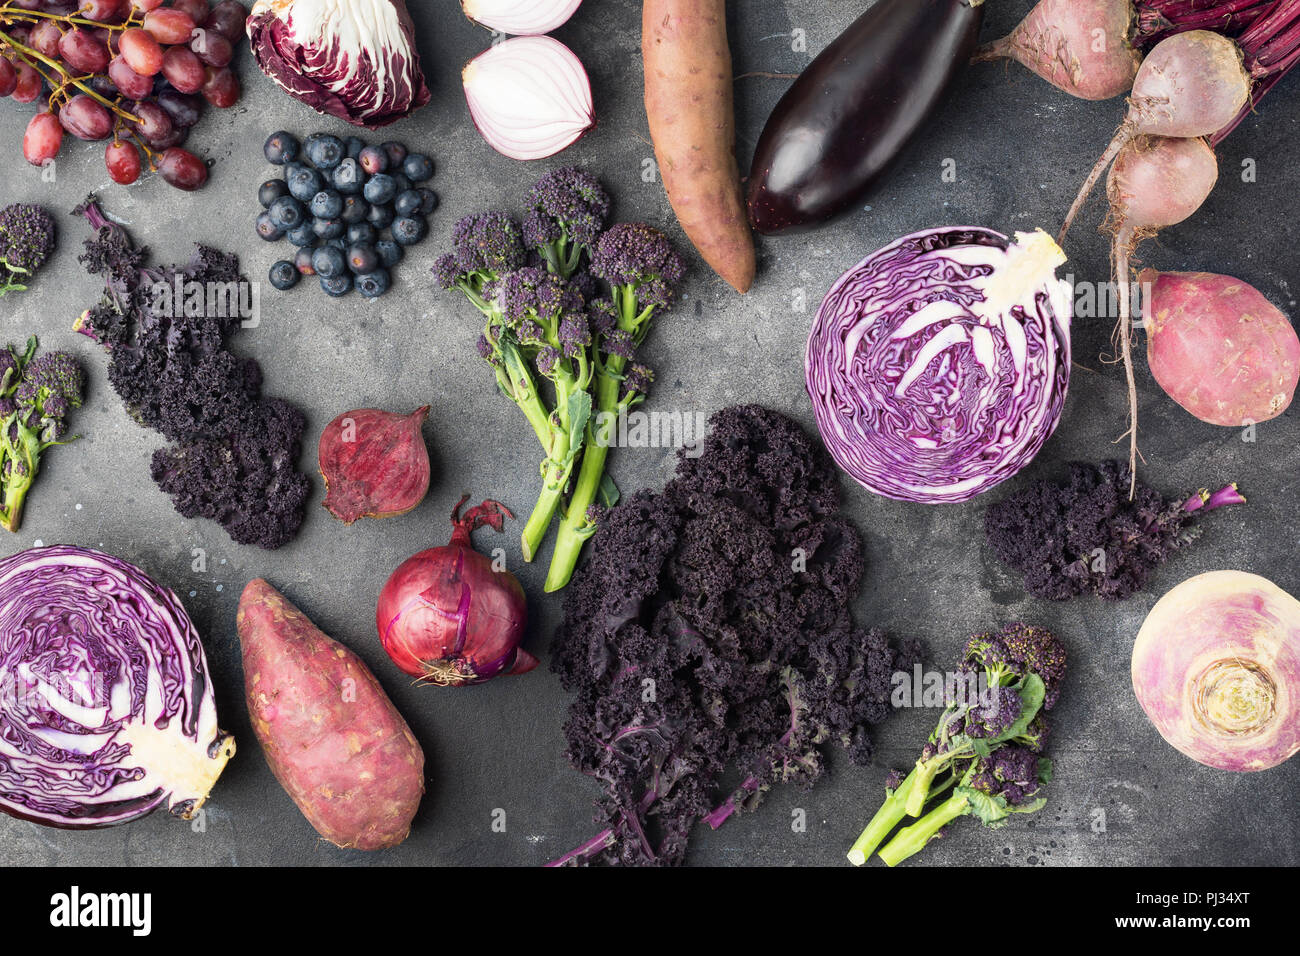 Vegetables and fruits background in purple, green and dark red colours, cabbage kale sprouts sweet potato onions broccoli blueberries grapes, top view, dark grey background, selective focus - Stock Image